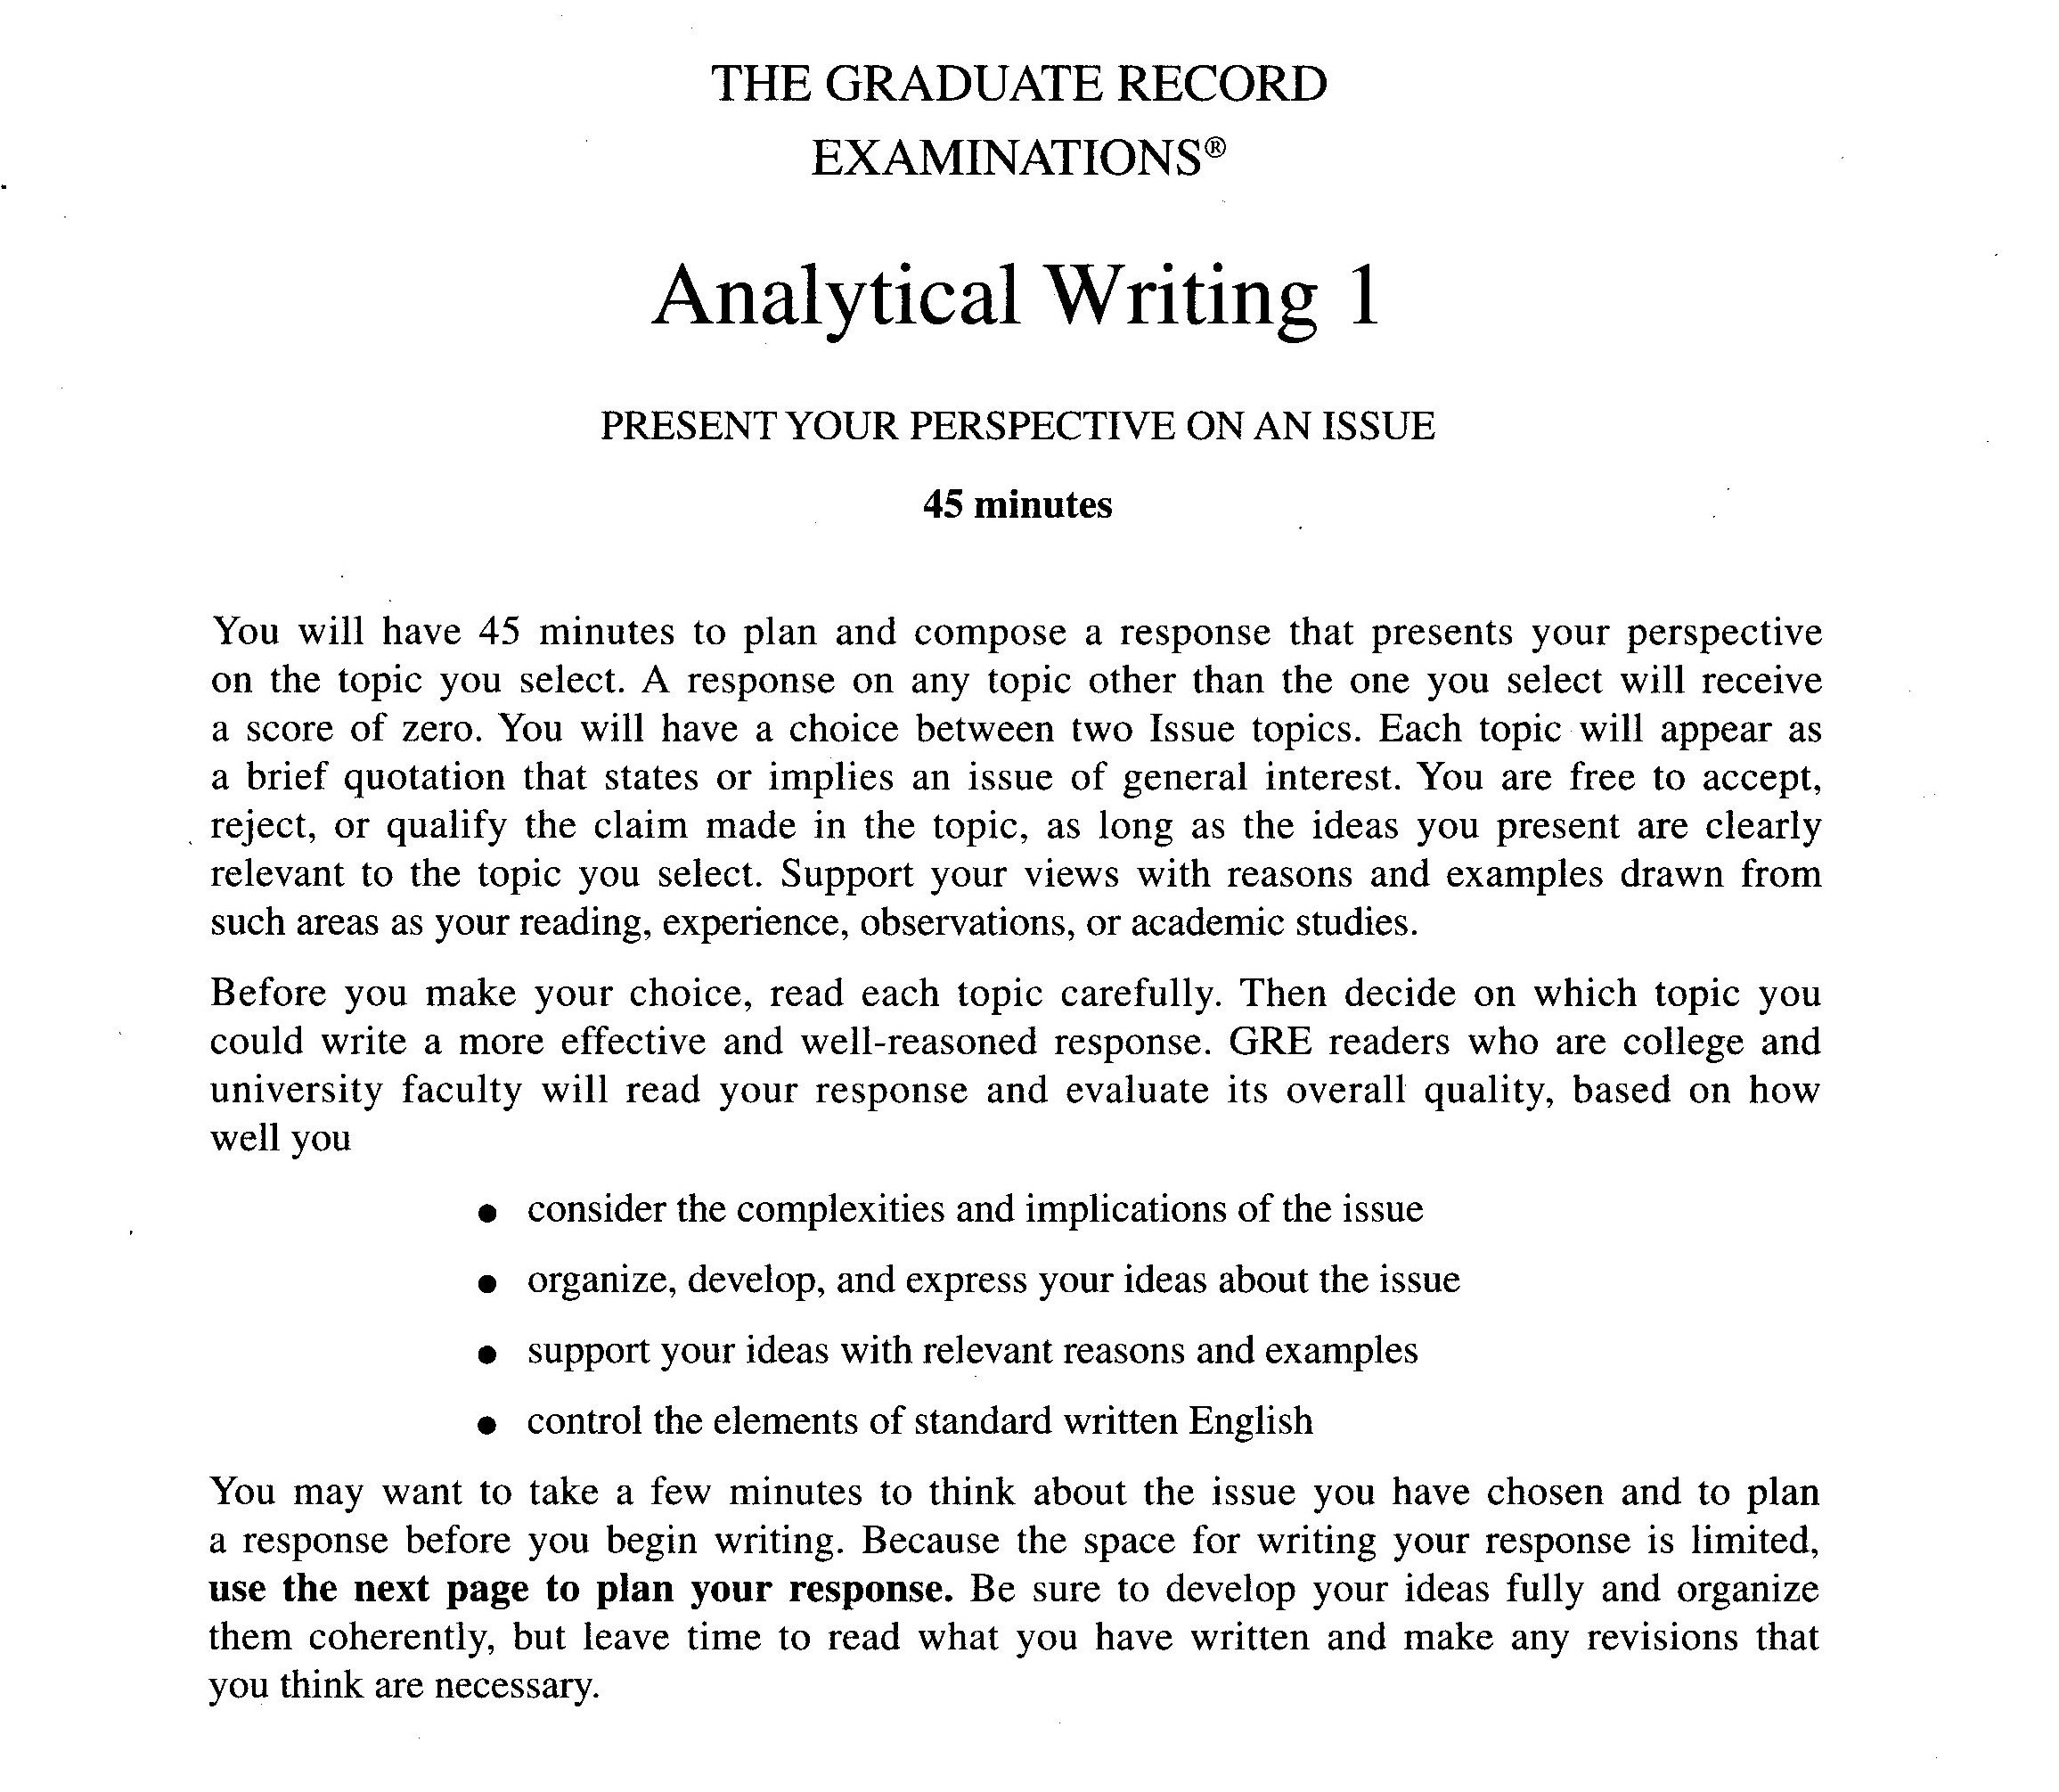 004 Gre Issue Essay Template Lovely Guide To Writing Basic Analytical Essayss Of For Stunning Sample Prompts Example Chart Revised Full